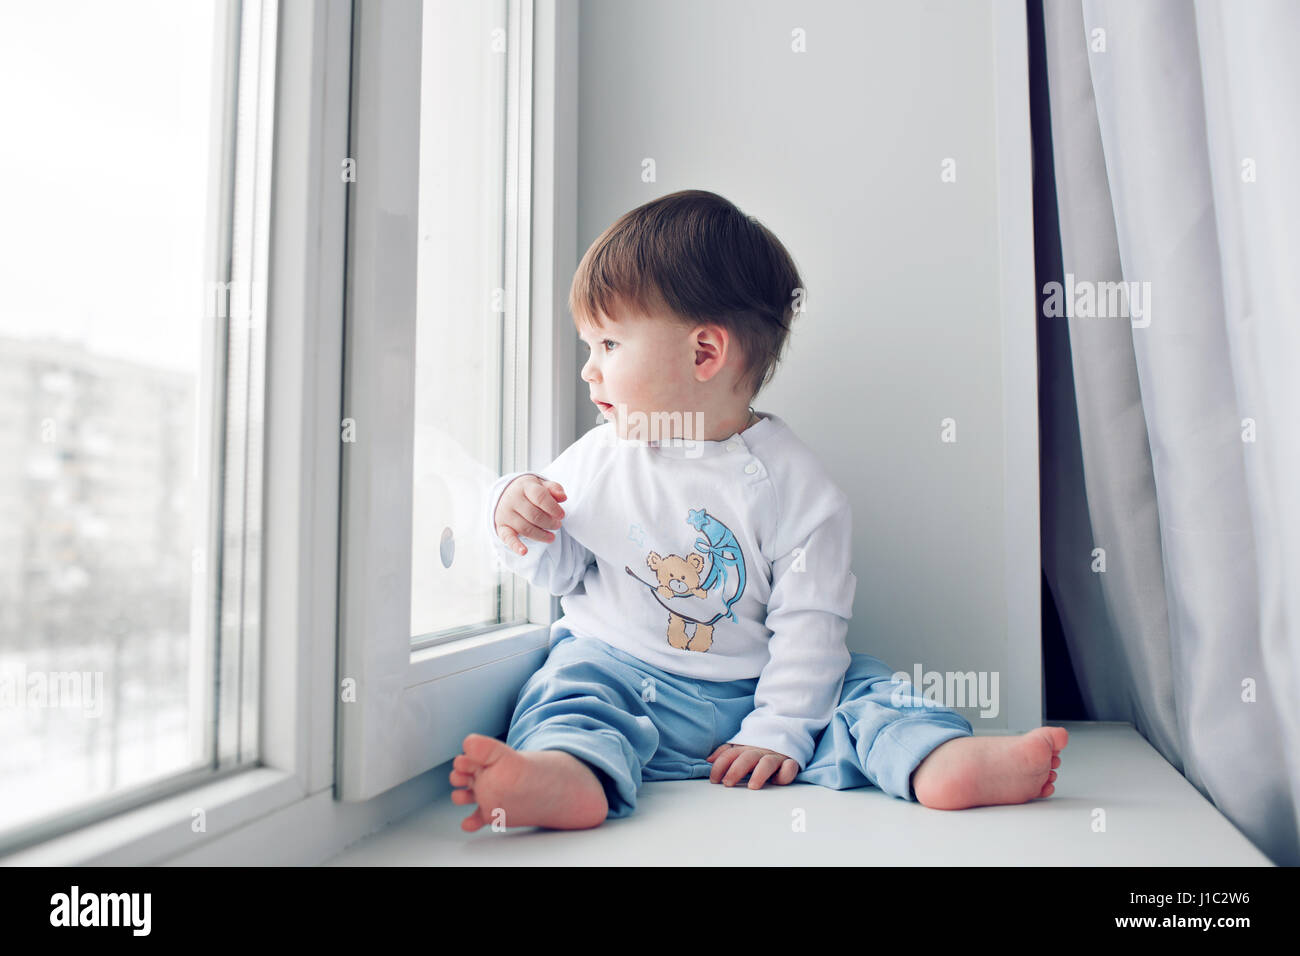 Adorable little baby seating on windowsill. looking out the window ...